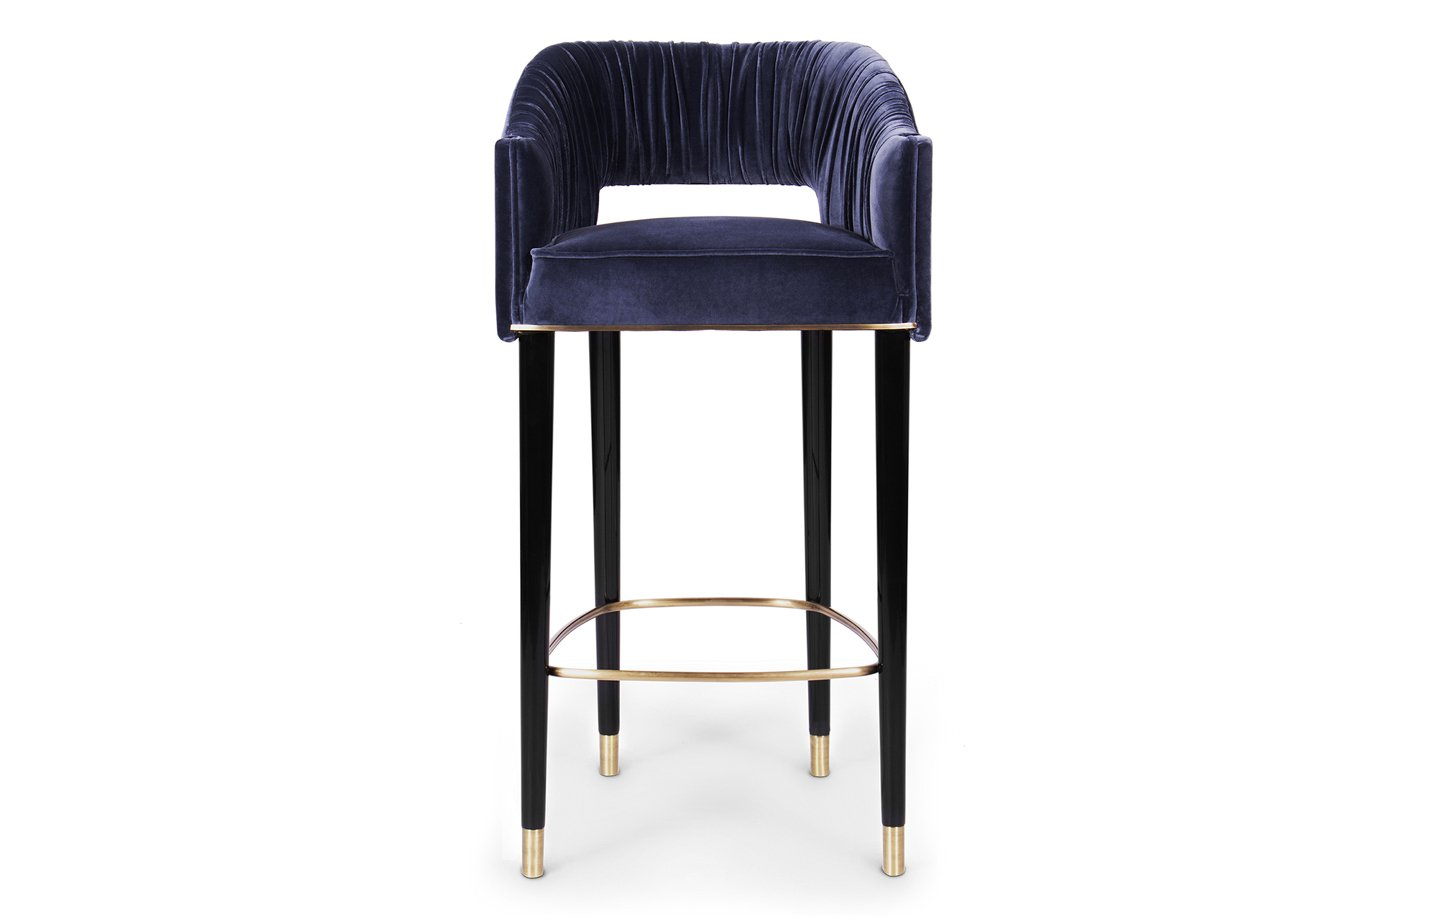 Stola bar chair – Blue